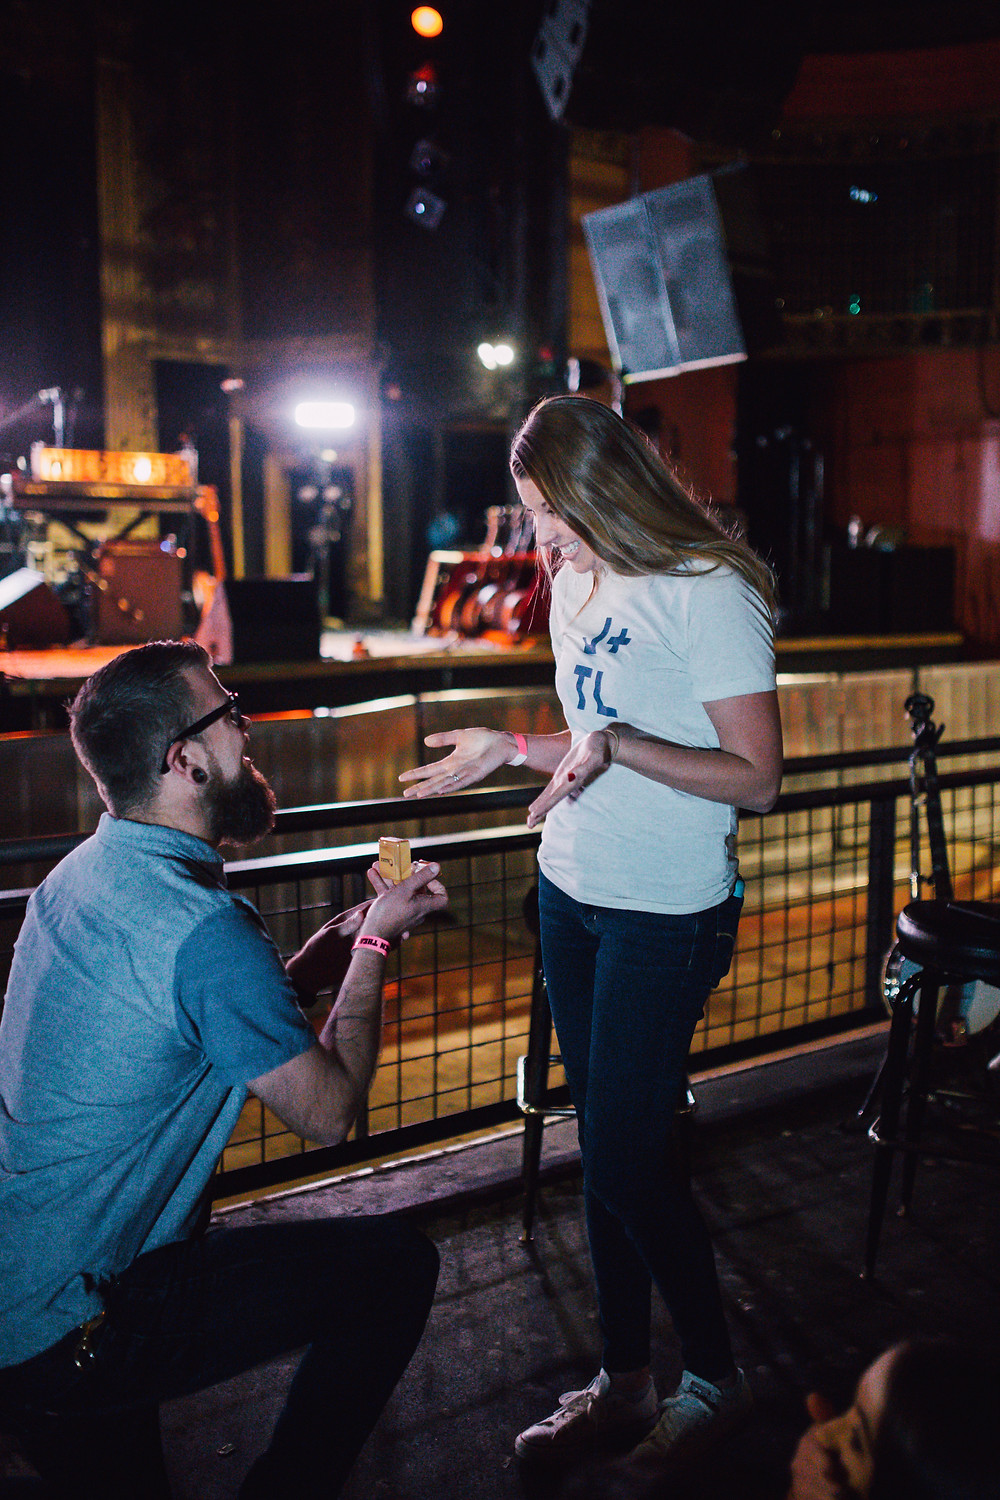 Holly Canon Travel and Lifestyle Blog Ashlee Crowden Photography Jordan Bousman of Bearded Bousman Photo Co Judah and the Lion Proposal Story